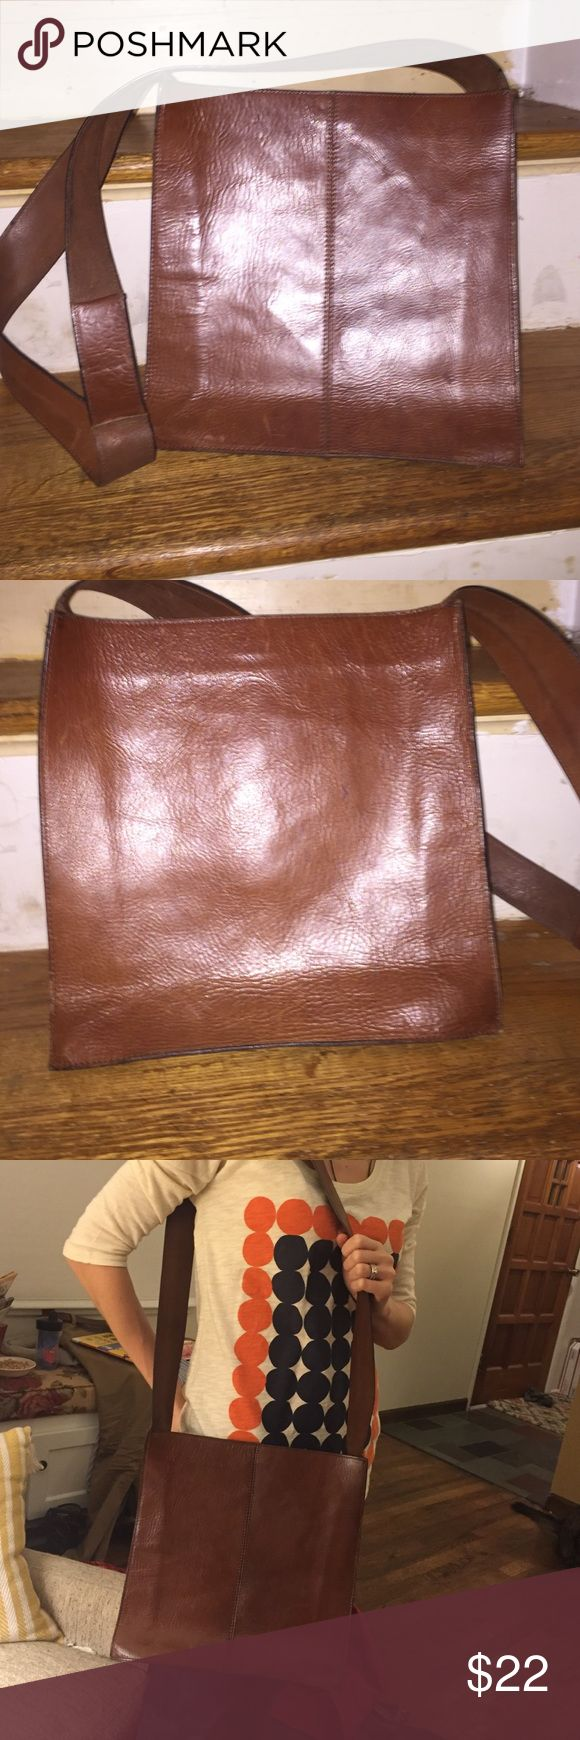 Real Leather Gap purse shoulder bag -- brown Well-loved leather Gap purse that still has a lot of life in it! Beautiful brown leather, compact design, never goes out of style! GAP Bags Shoulder Bags